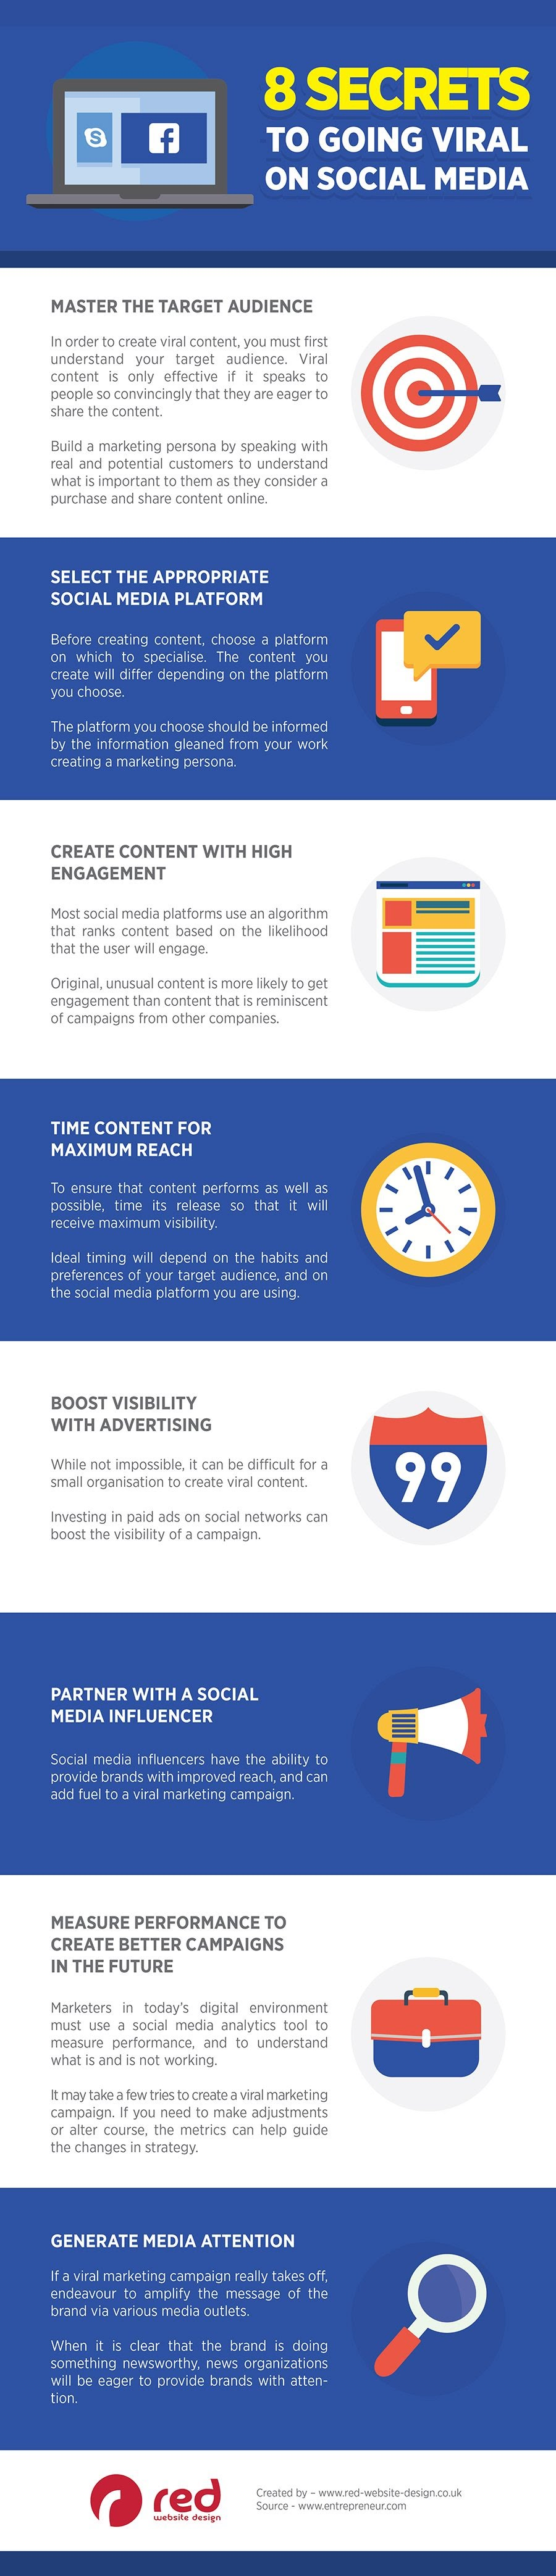 8 Secrets to Going Viral on Social Media - #Infographic